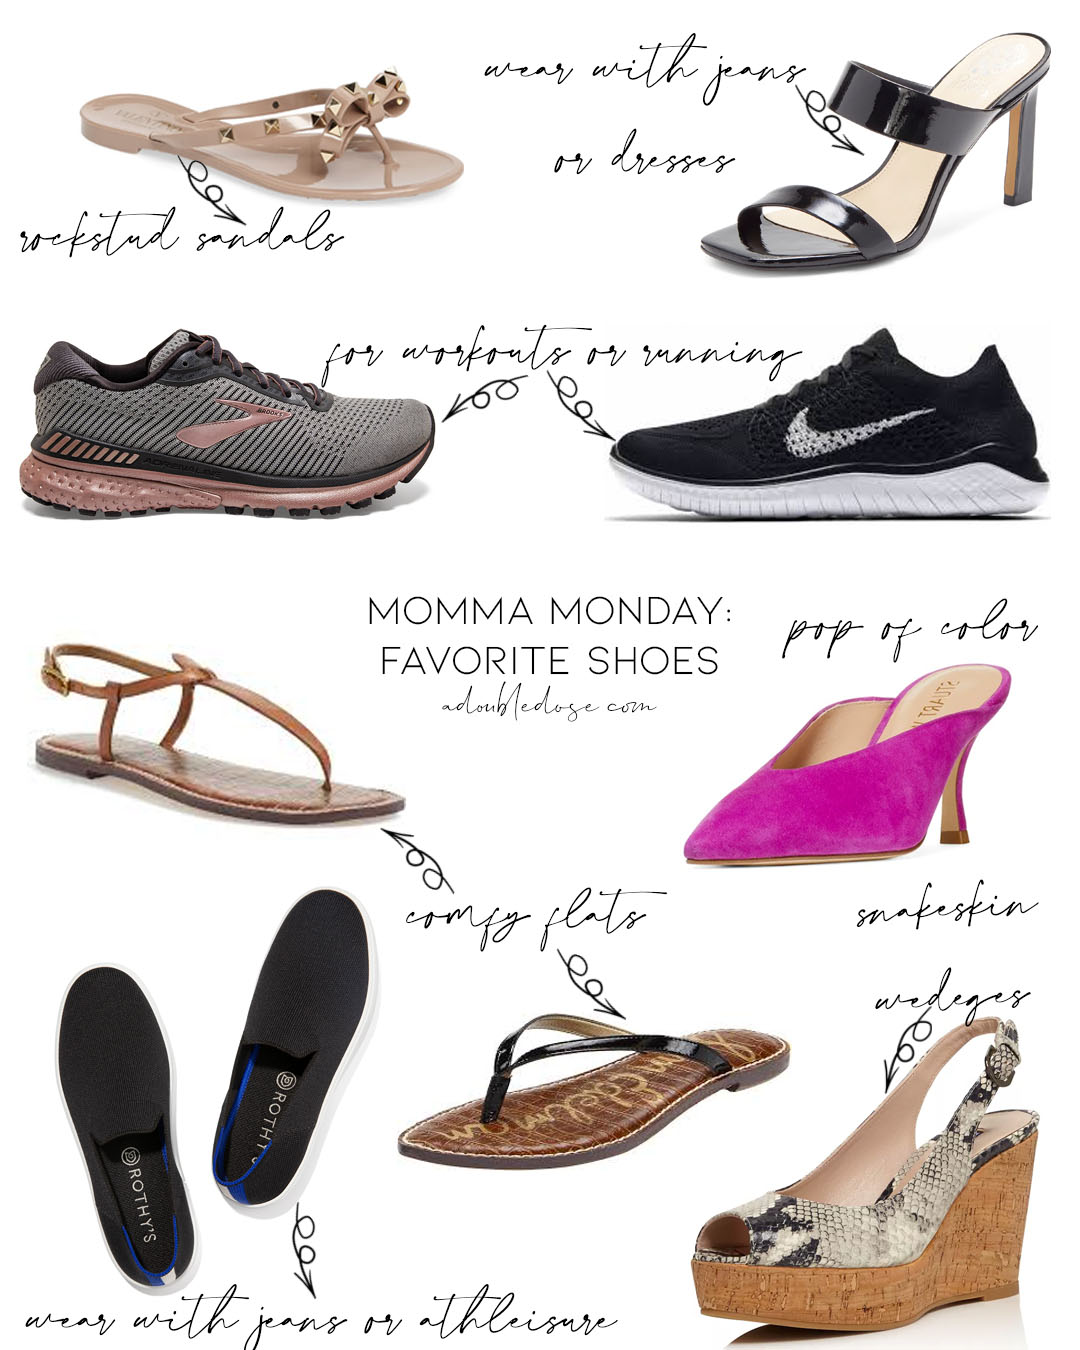 lifestyle and fashion bloggers alexis and samantha belbel sharing their momma monday series featuring their moms favorite and go to shoes from brooks and nike sneakers to sam edelman sandals and other heels | adoubledose.com